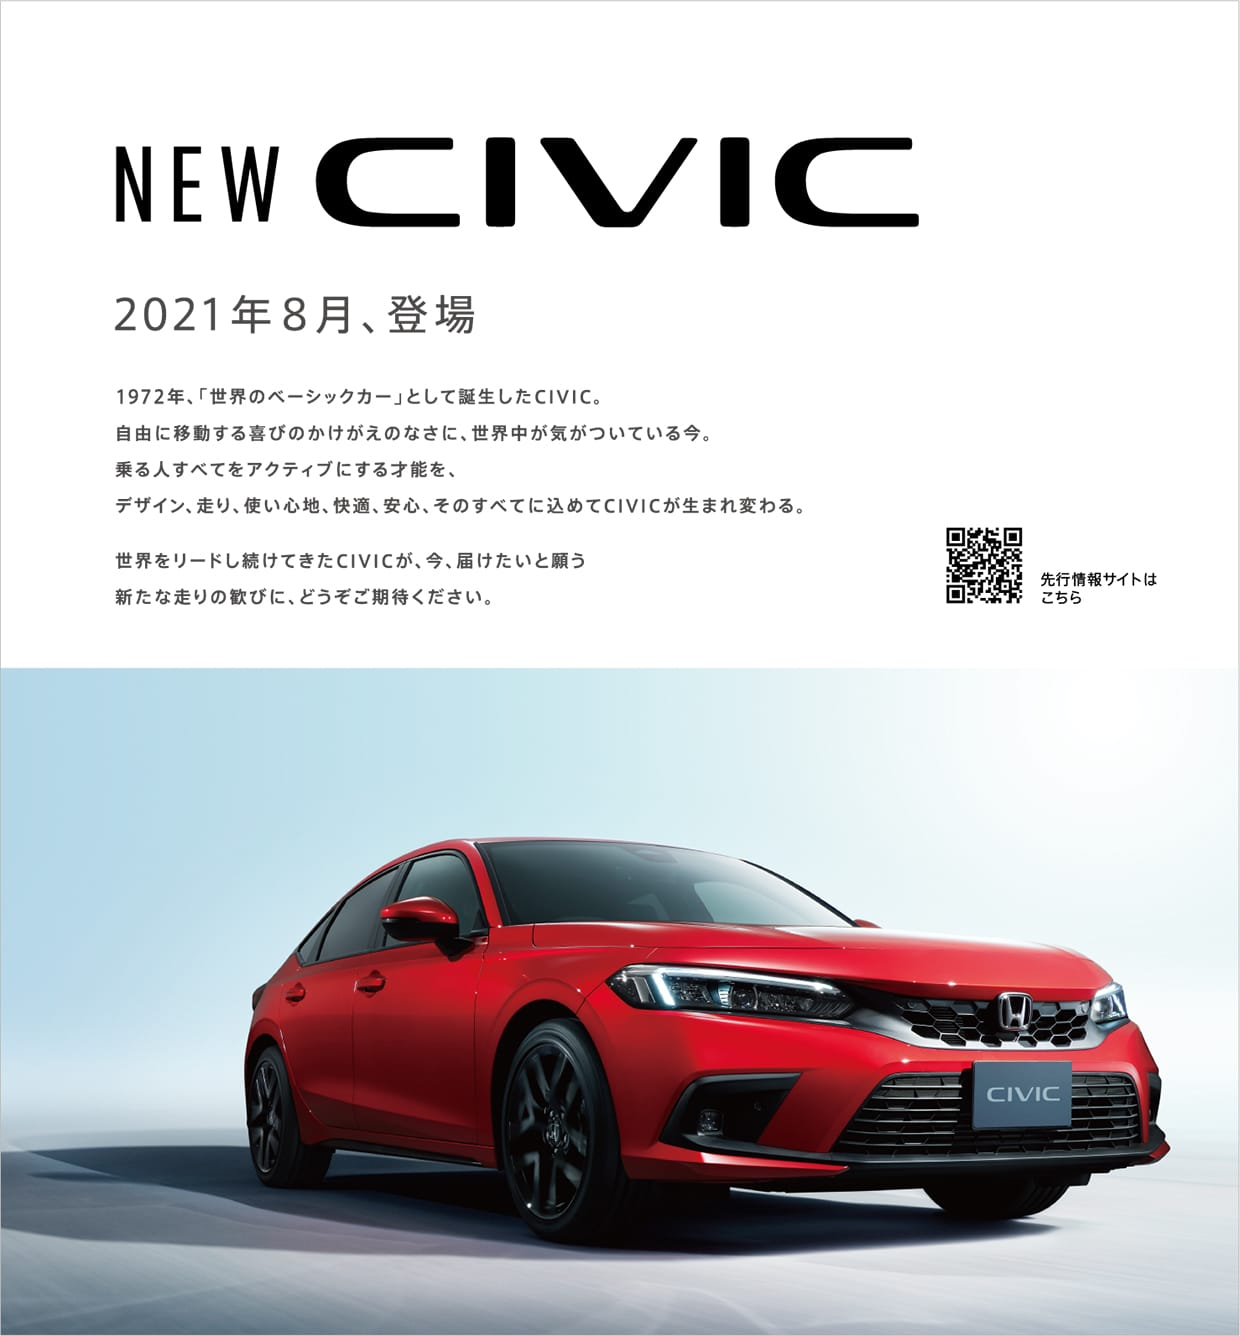 NEW CIVIC COMING SOON